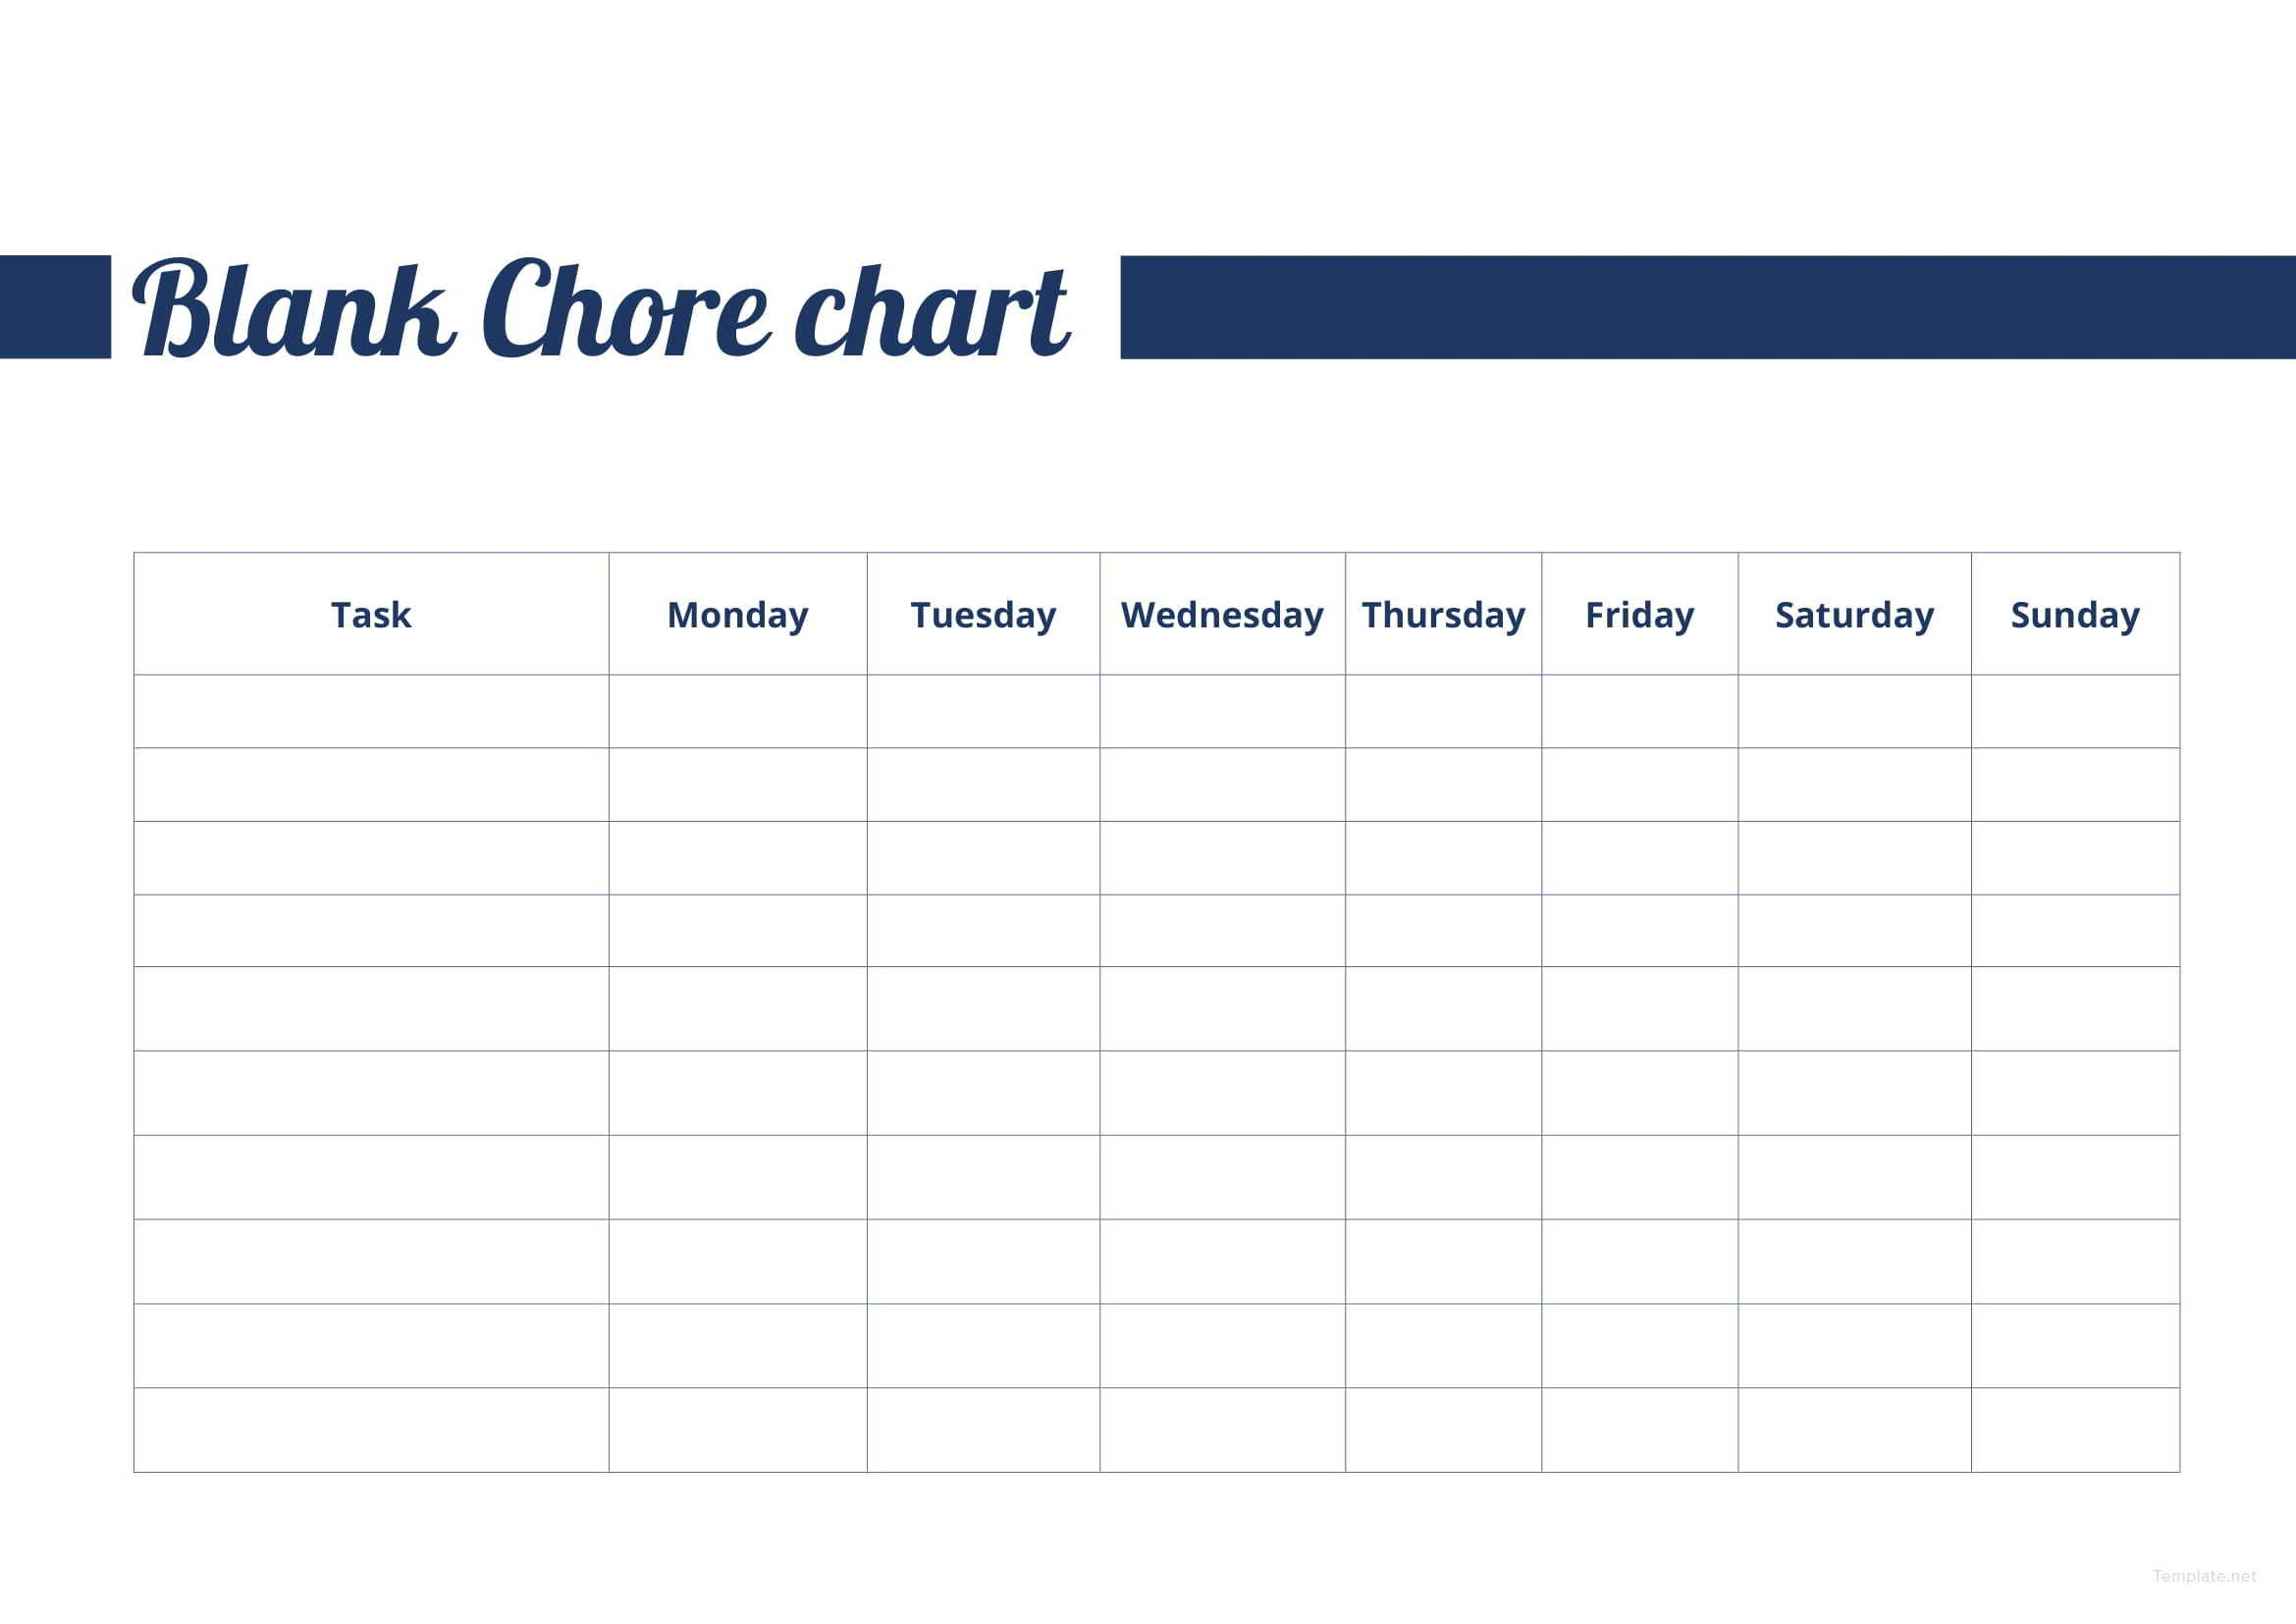 Free Blank Chore Chart With Images